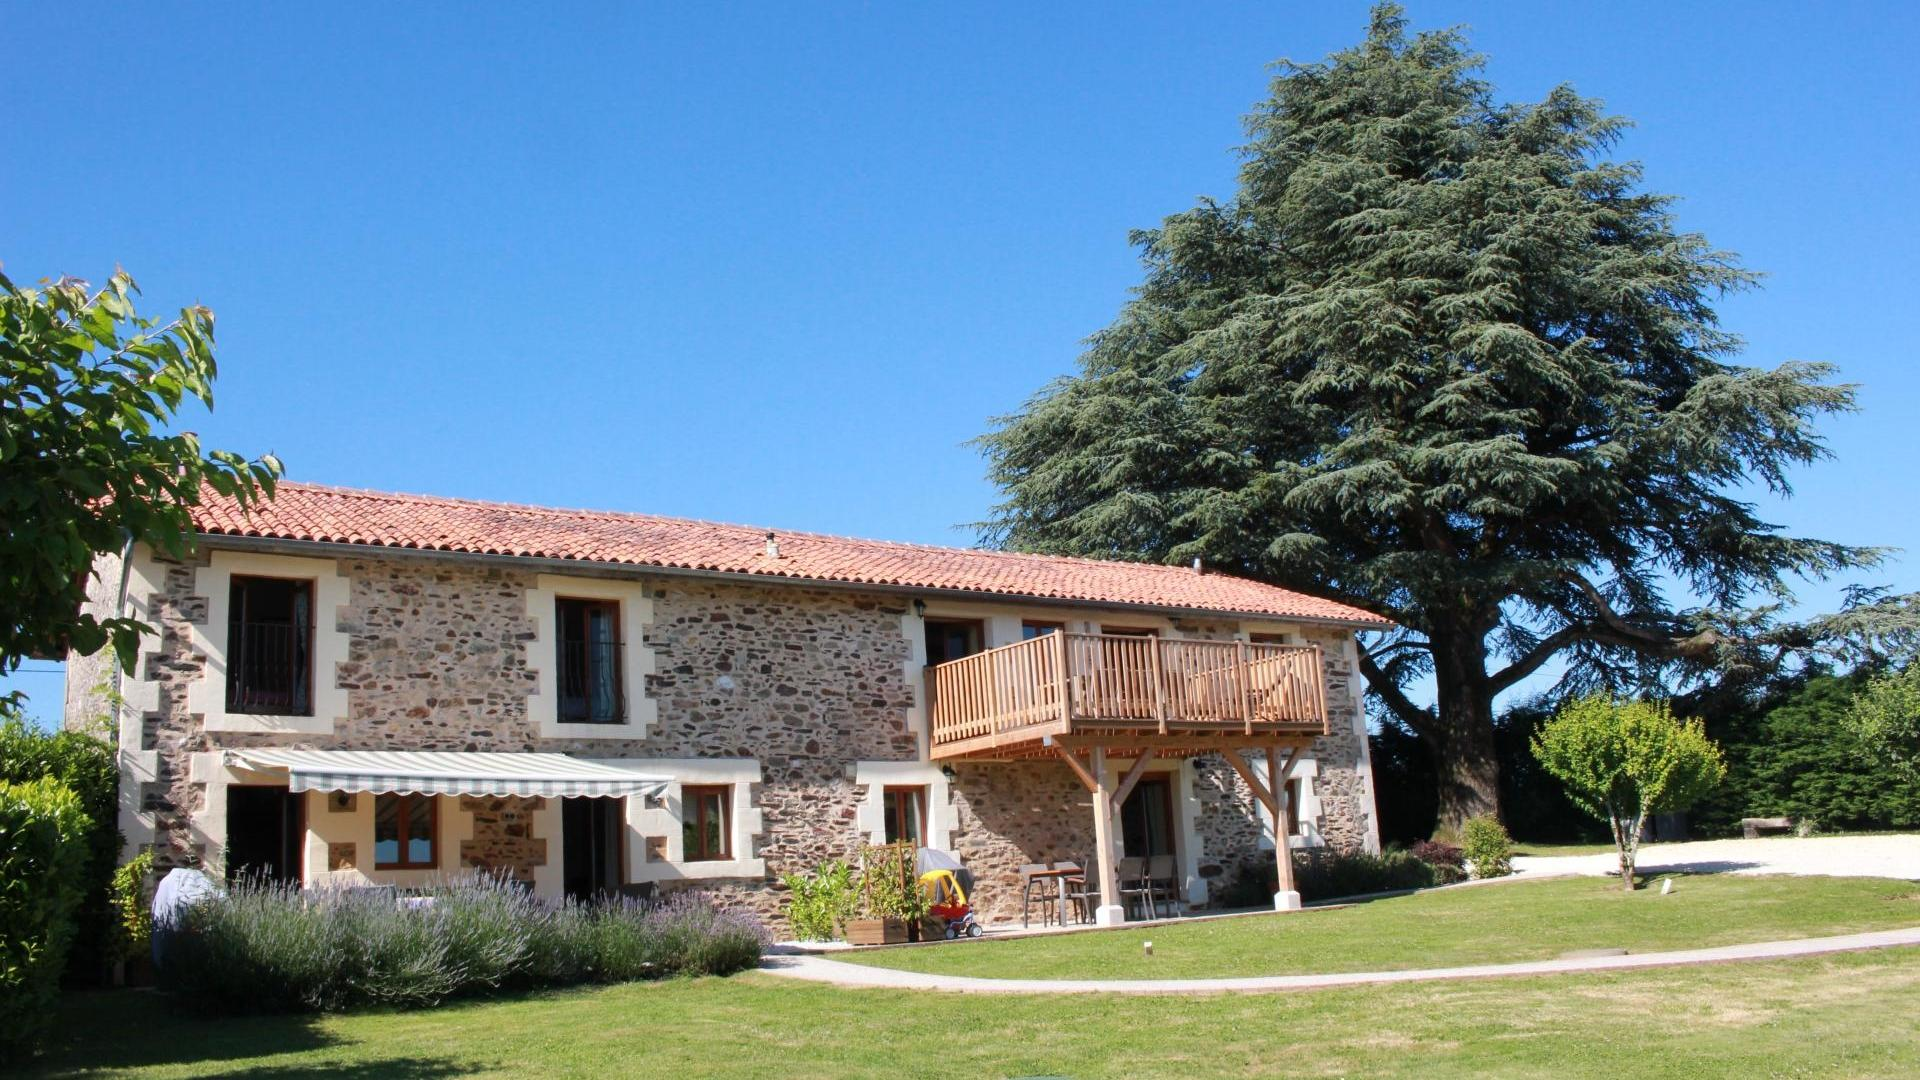 5 Bedroom Cottage/shared grounds in Poitou-Charentes, France